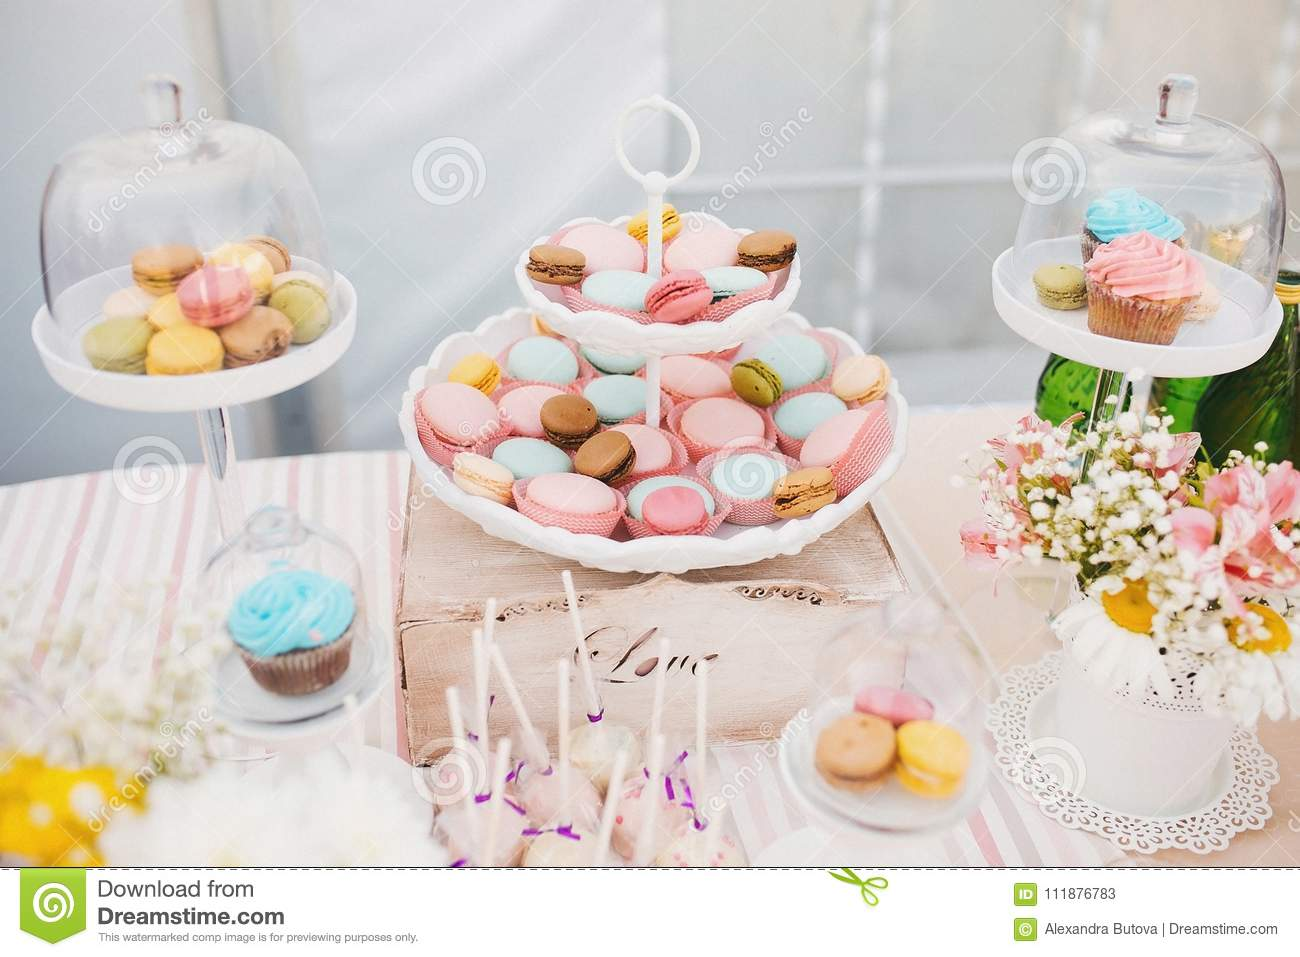 Candy bar with ceramic white plate stands with colorful tasty macaroons, pink and blue cupcake on a buffet table